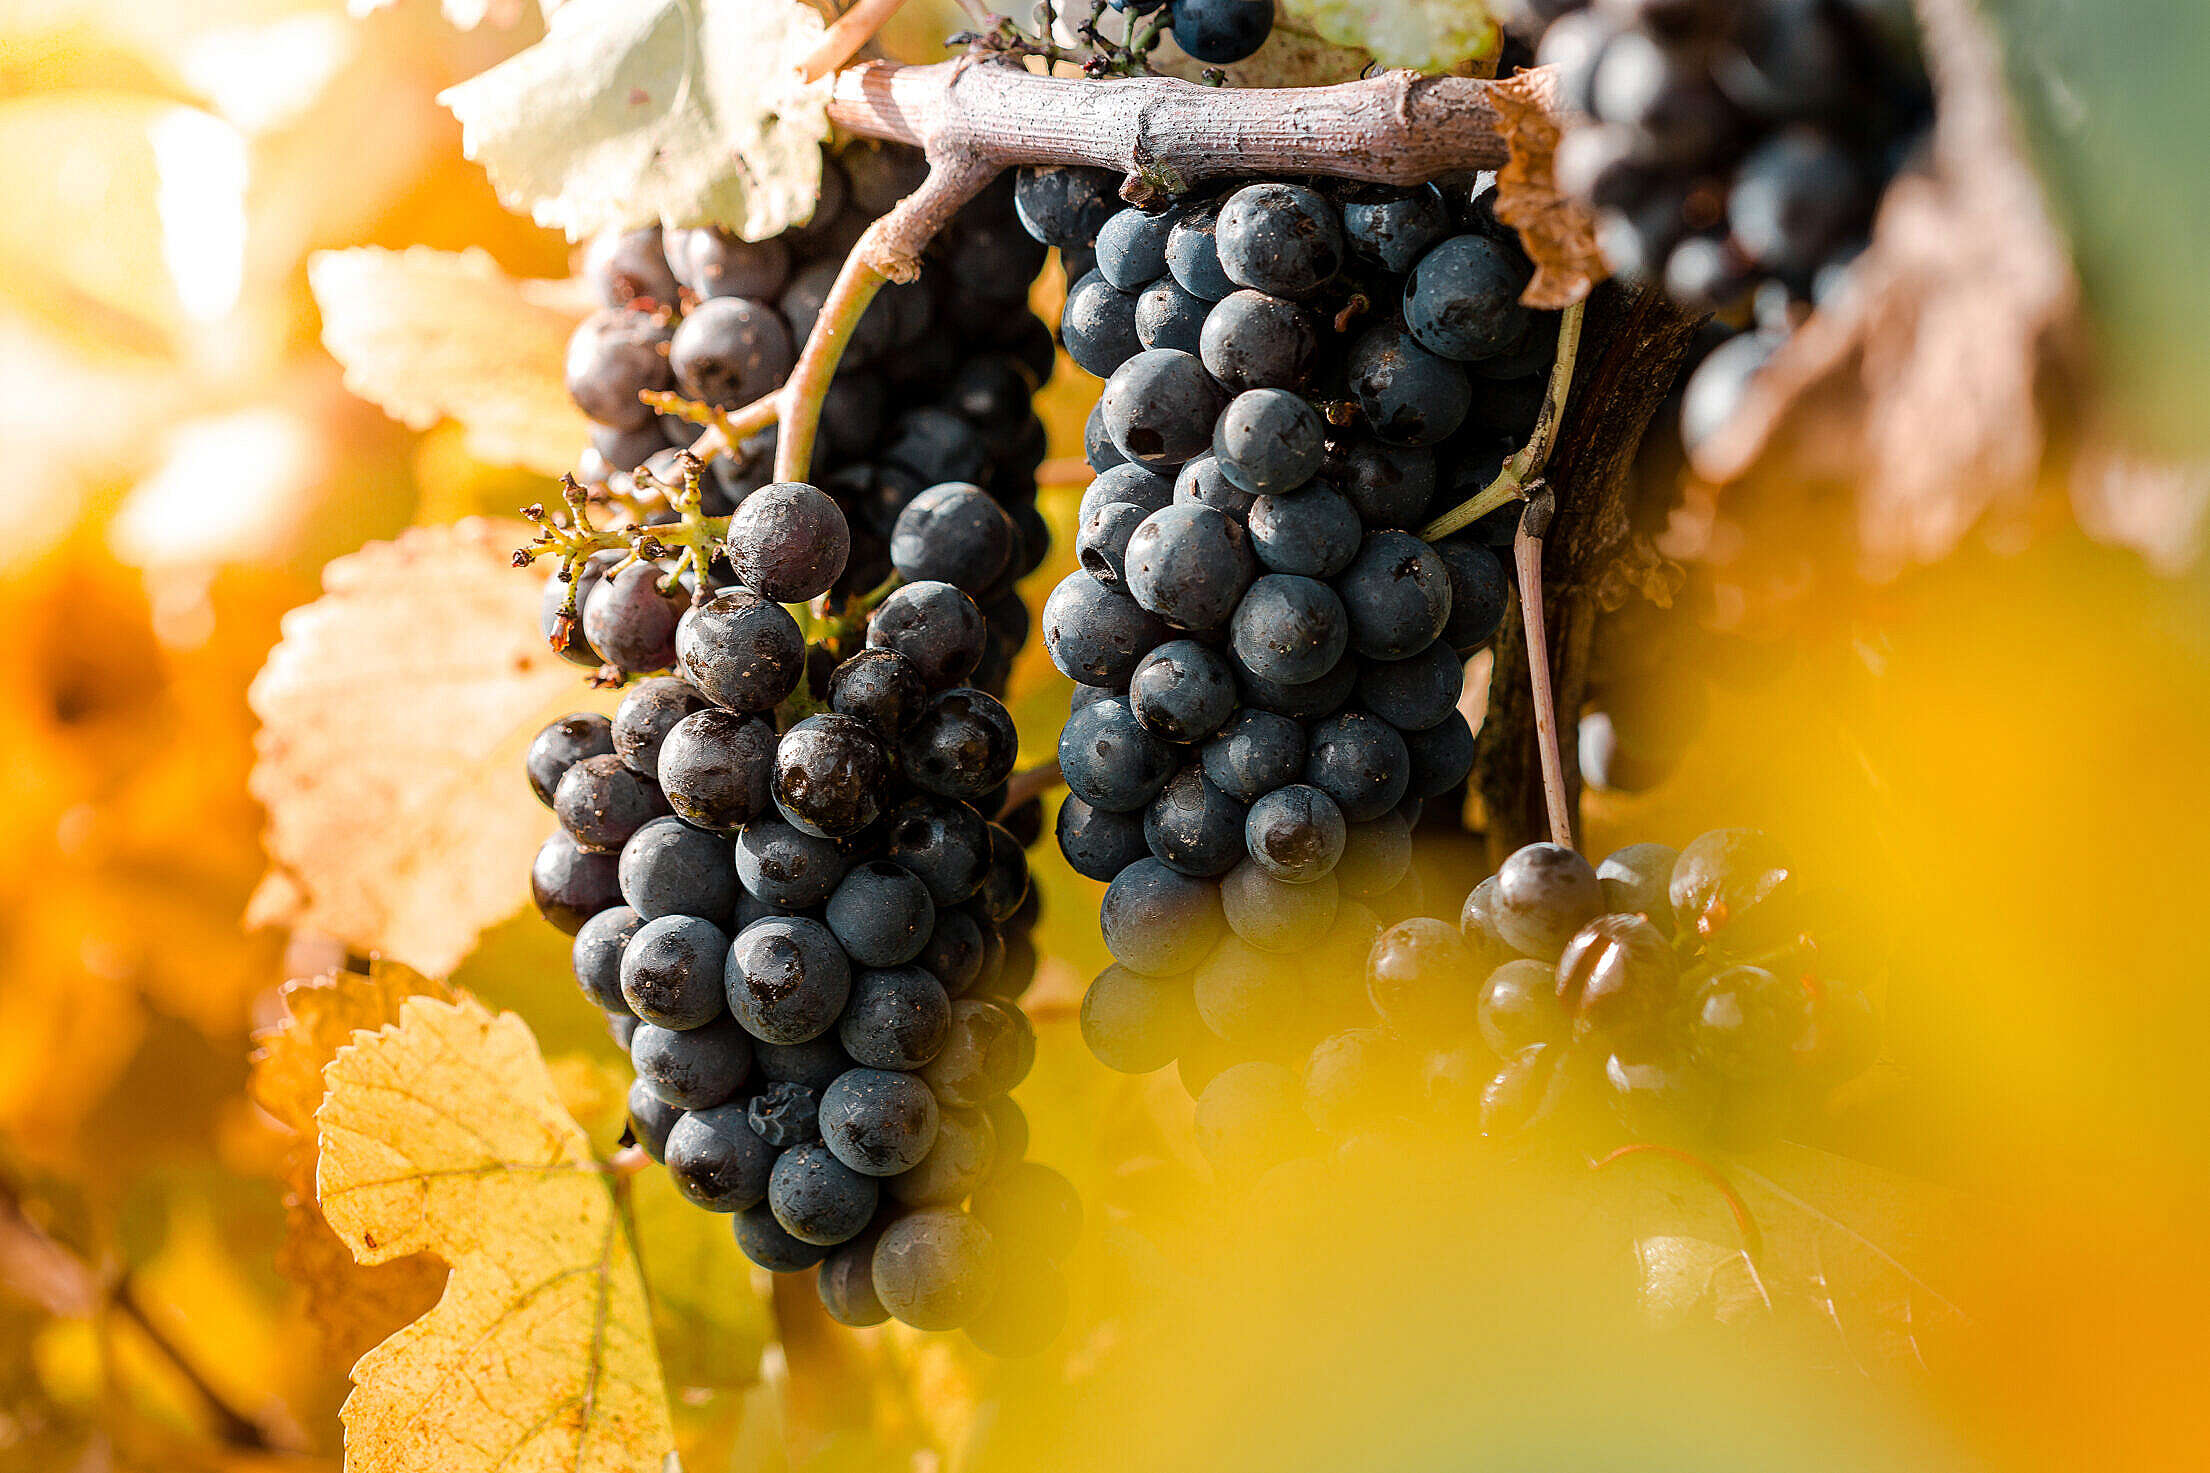 Damaged Blue Grapes in The Vineyard Free Stock Photo